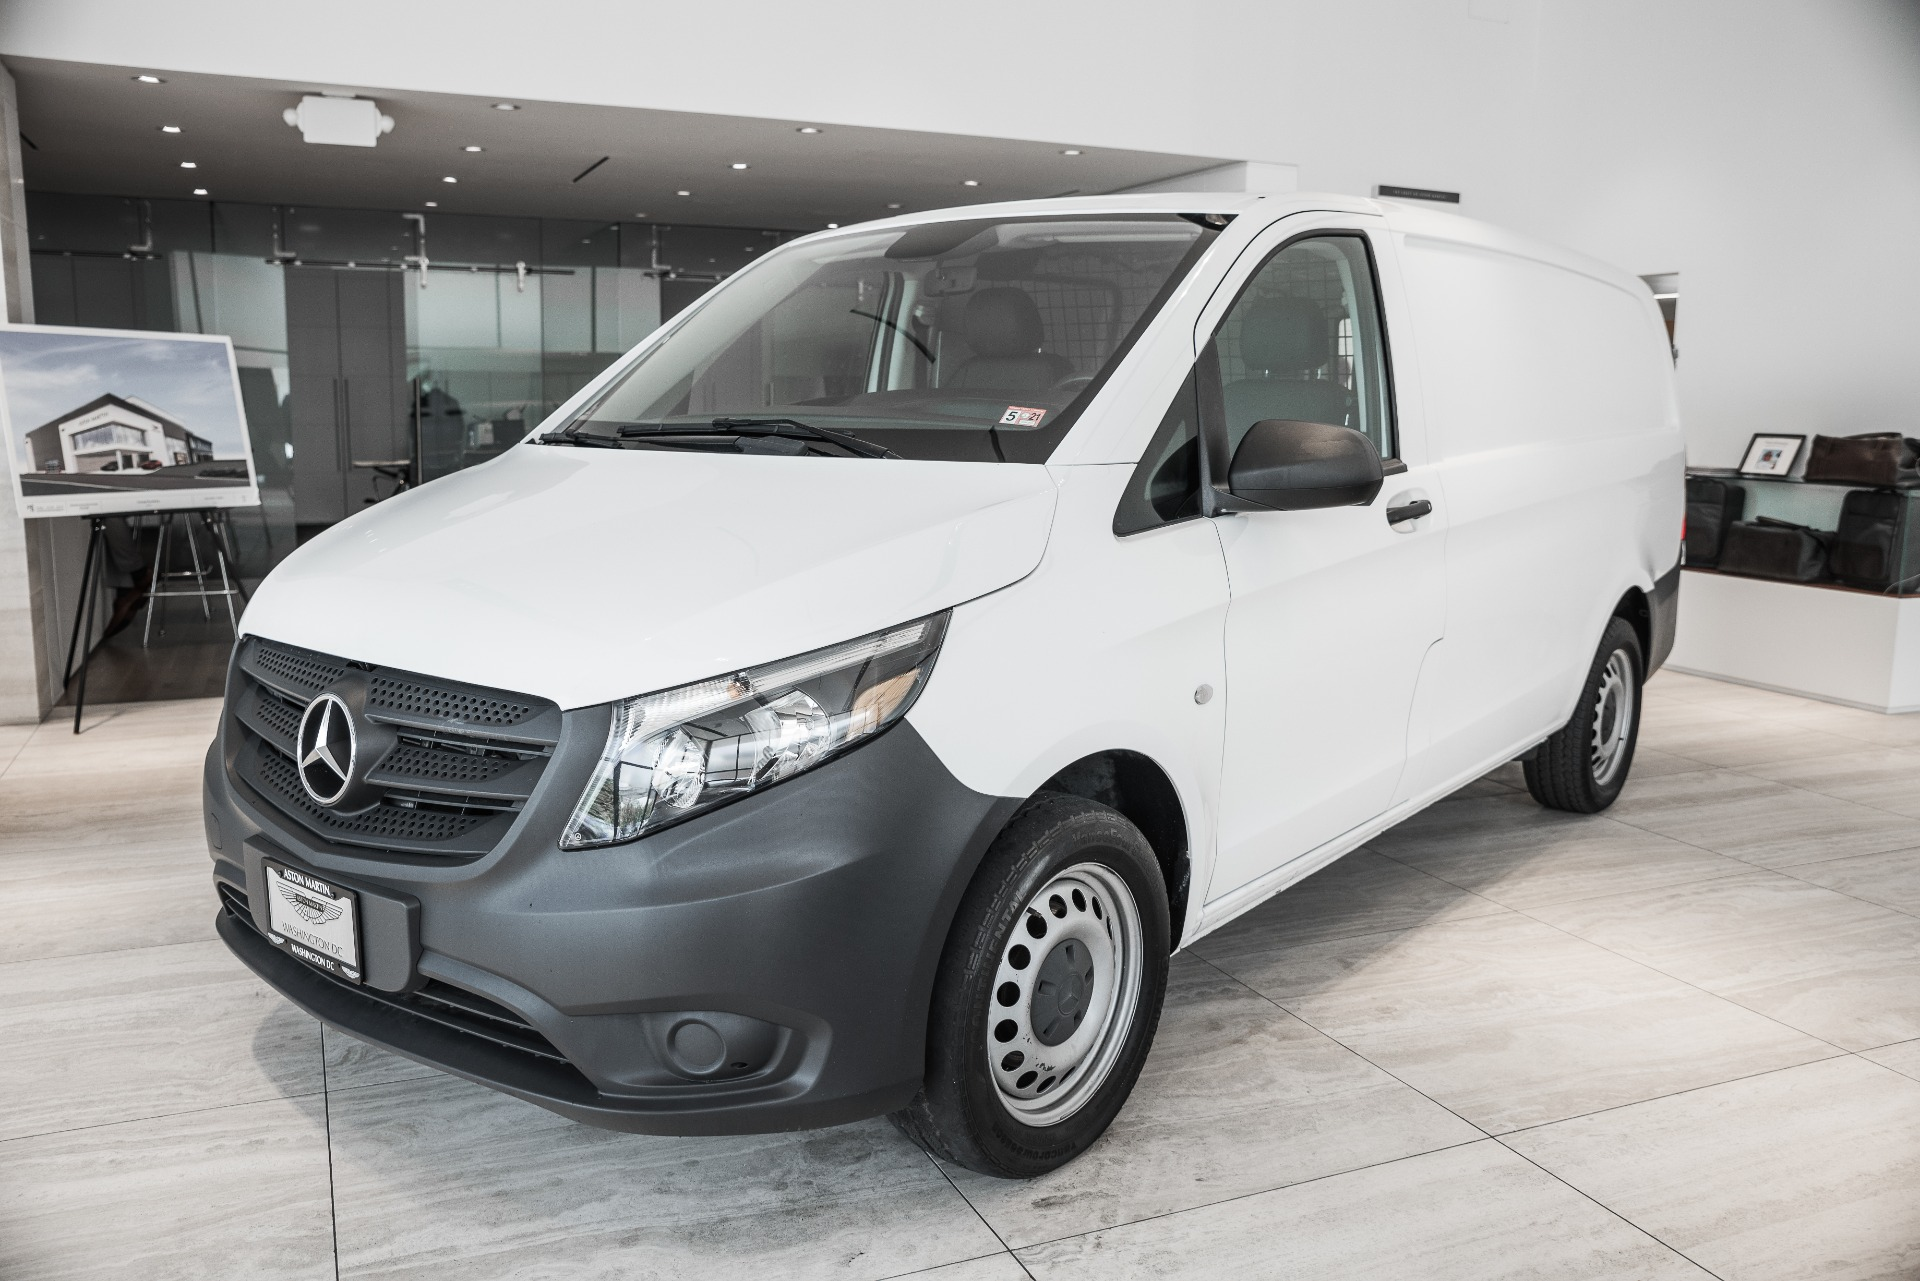 Used-2017-Mercedes-Benz-Metris-Cargo-Van-Worker-Cargo